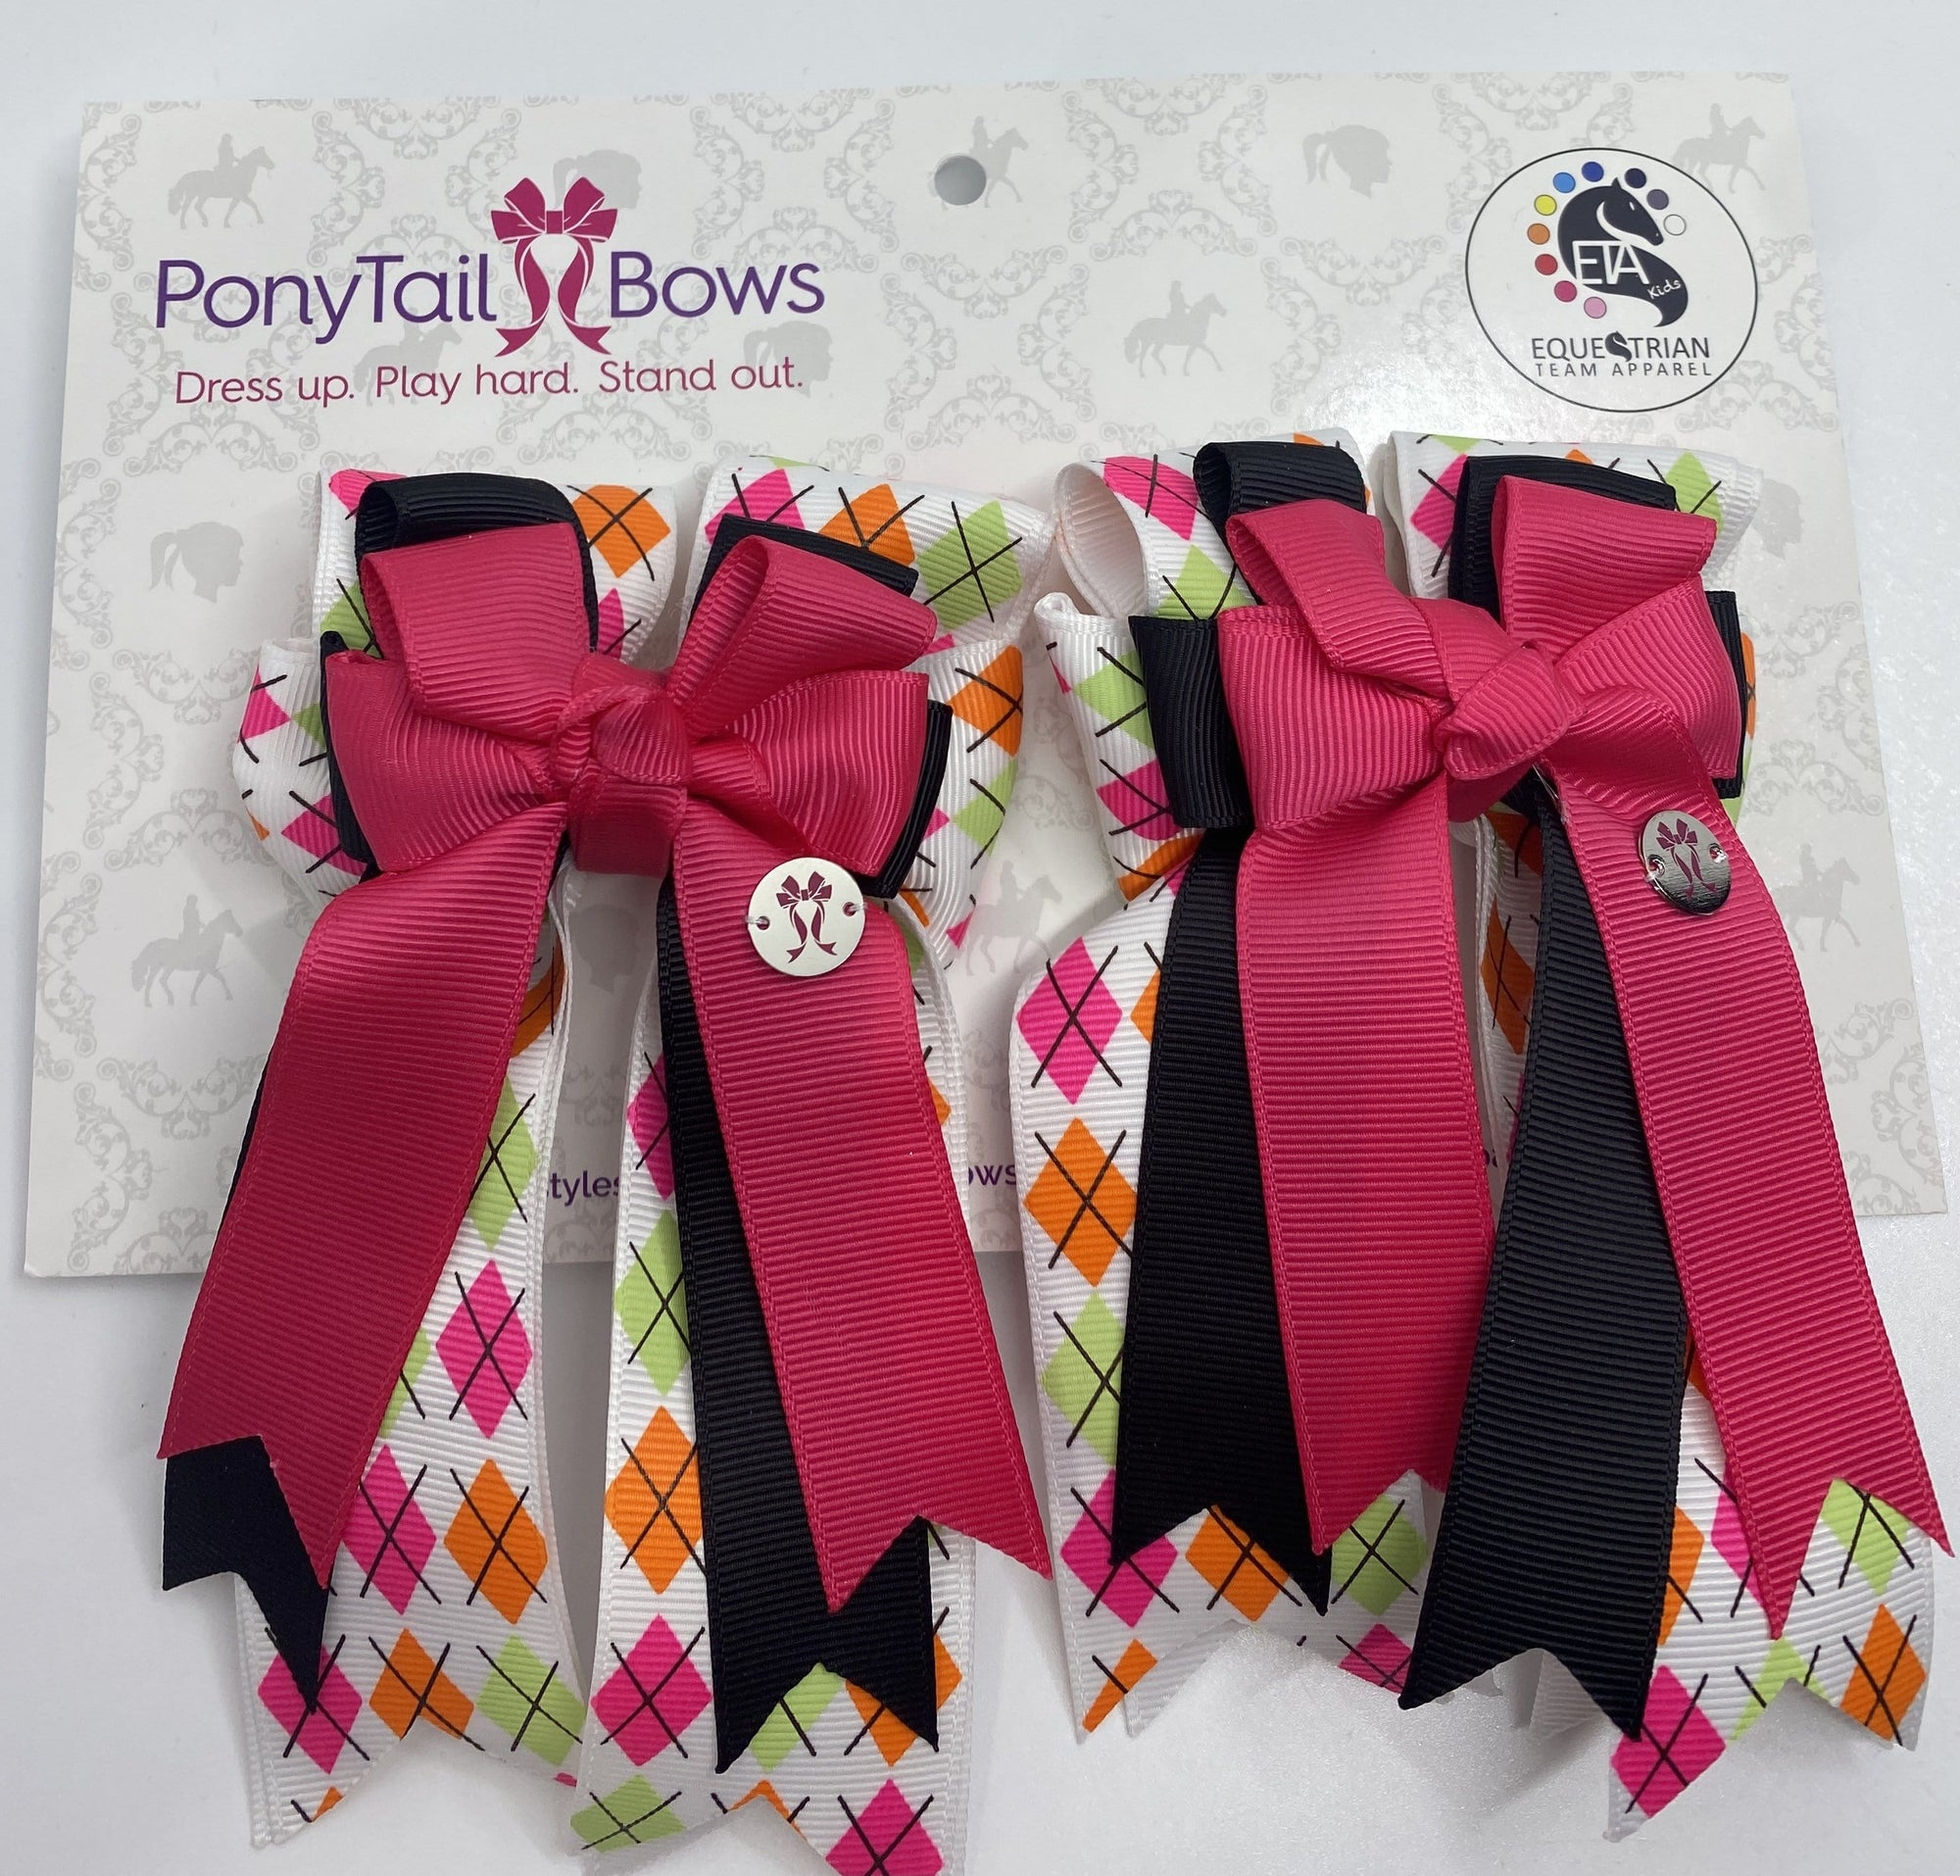 "PonyTail Bows 3"" Tails Argyle Pink/Black PonyTail Bows equestrian team apparel online tack store mobile tack store custom farm apparel custom show stable clothing equestrian lifestyle horse show clothing riding clothes PonyTail Bows 